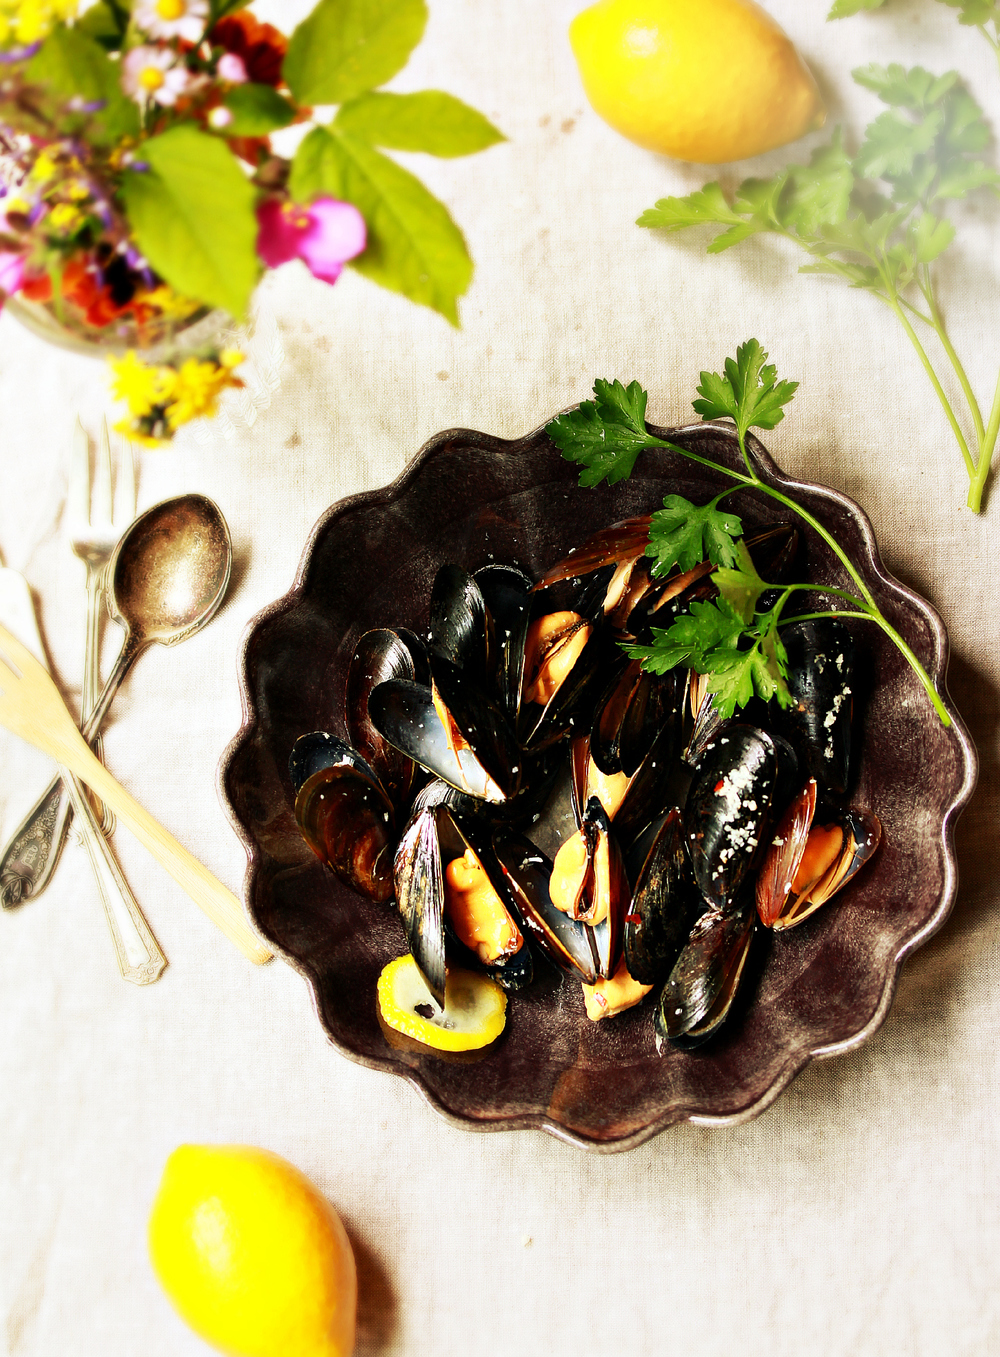 Steamed Mussels Dinner Scene by Dena T Bray